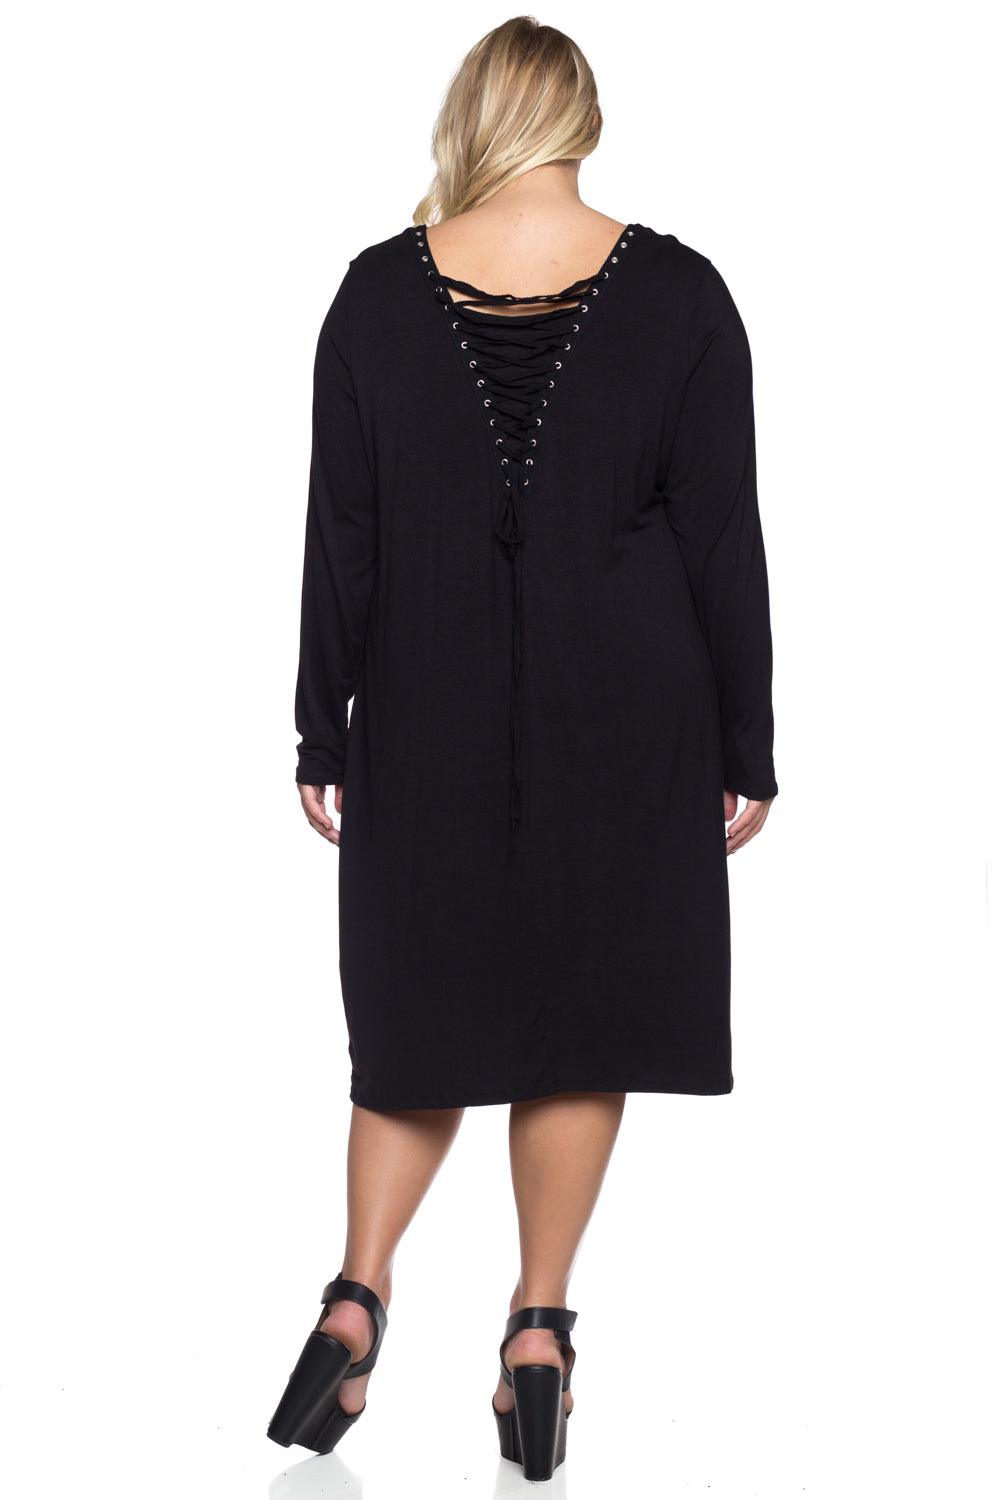 Women's Plus Size Stretch Knit Lace-up Dress